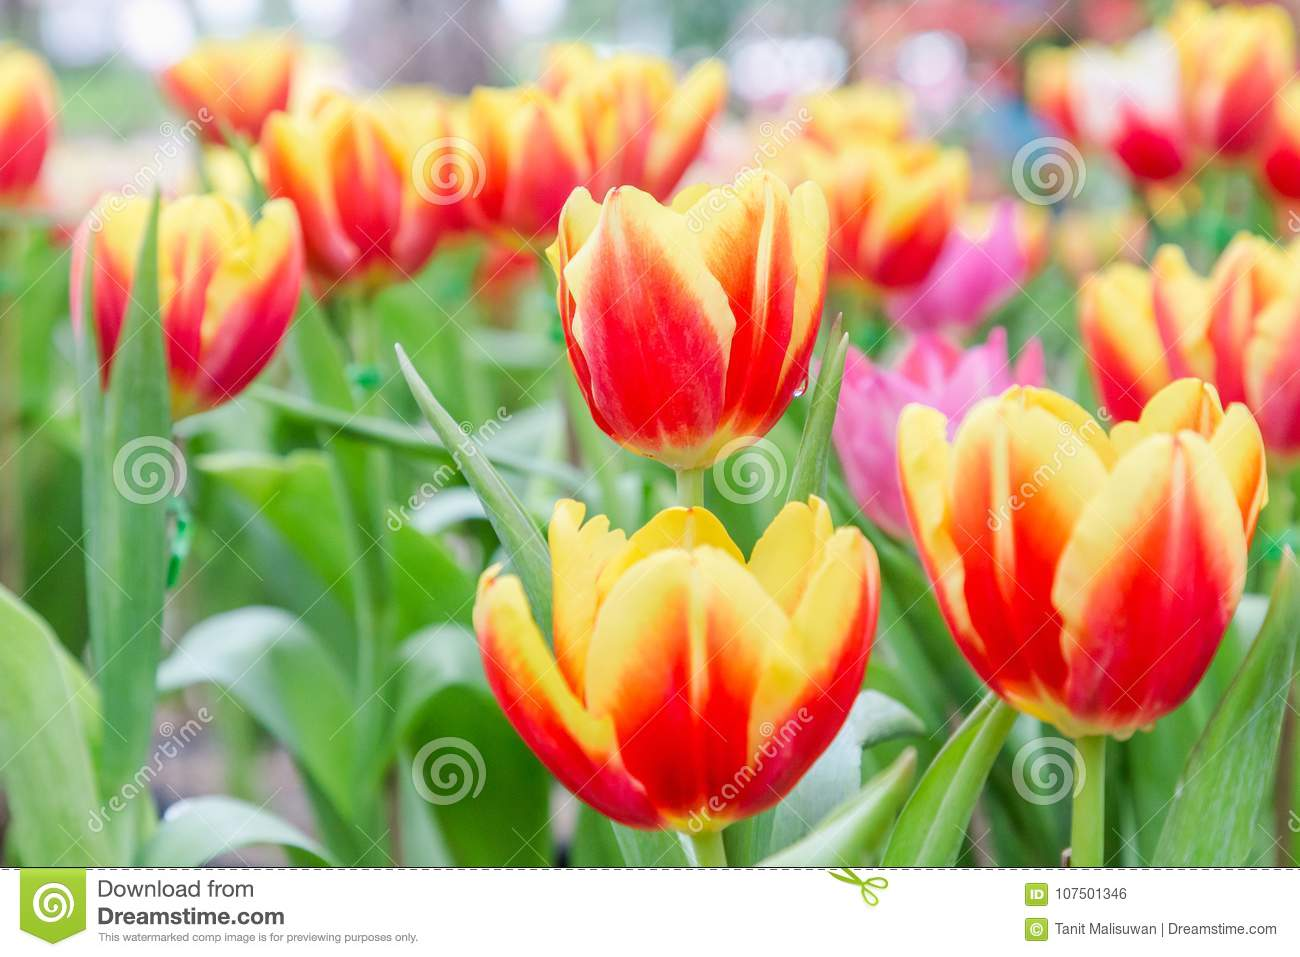 Beautiful tulip flower and green leaf background in tulip garden at beautiful tulip flower green leaf background tulip garden winter spring day beautiful tulip flower green leaf 107501346g izmirmasajfo